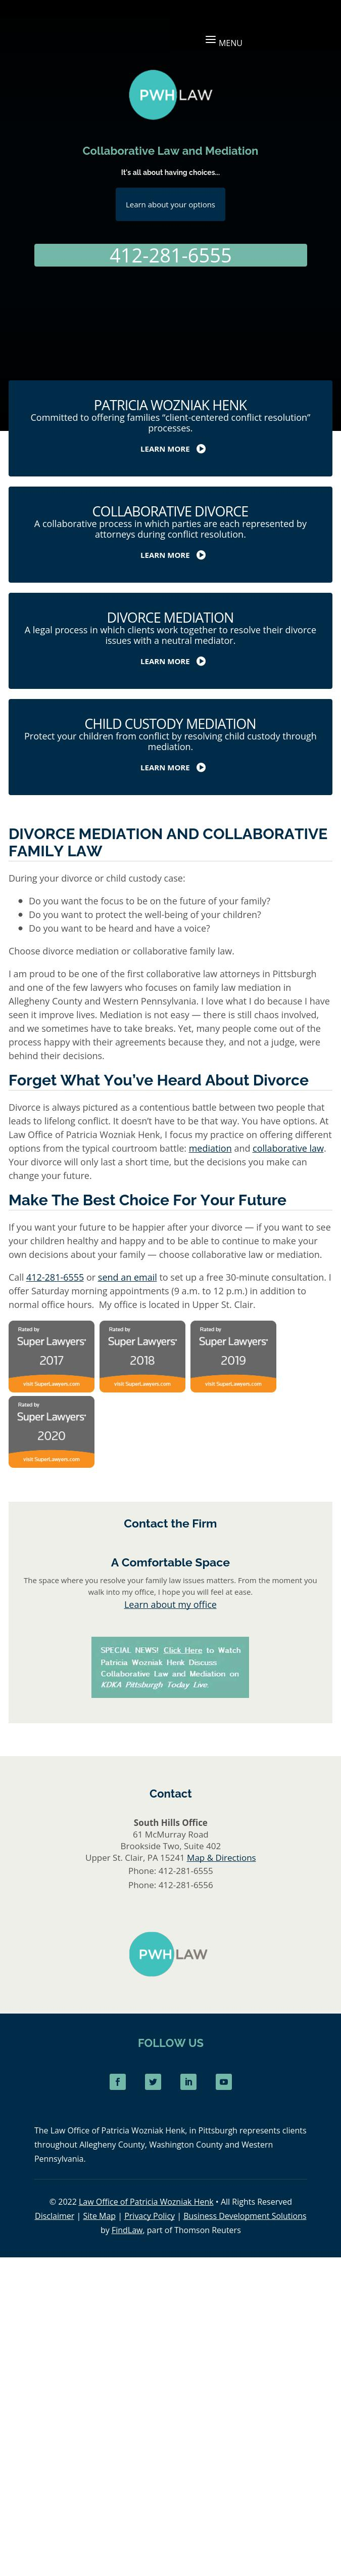 Law Office of Patricia Wozniak Henk - Pittsburgh PA Lawyers